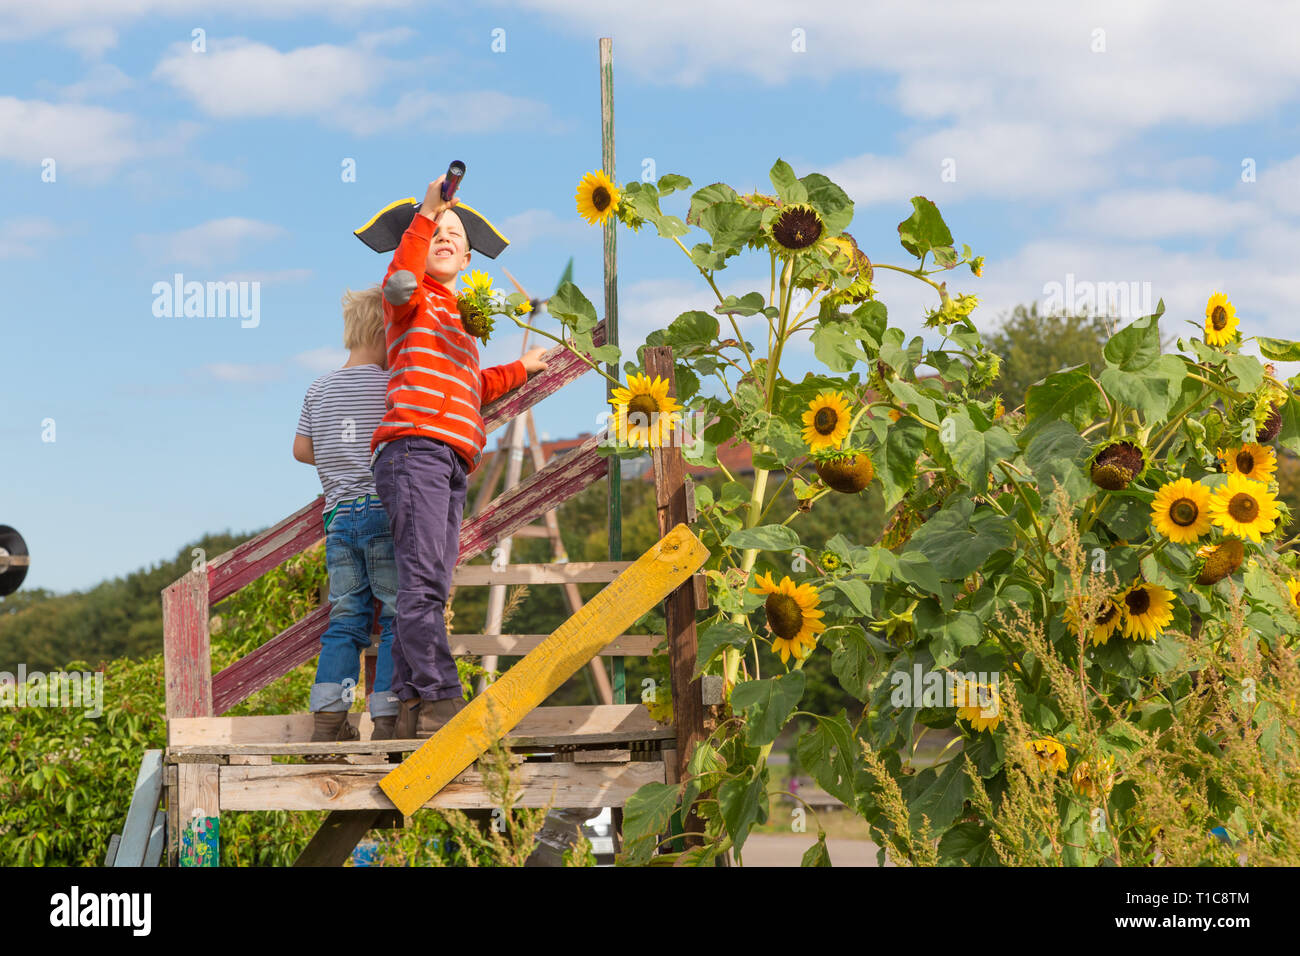 Kids playing pirates in urban gardens at Tempelhofer field, once airport, now a public park in Berlin, Germany - Stock Image